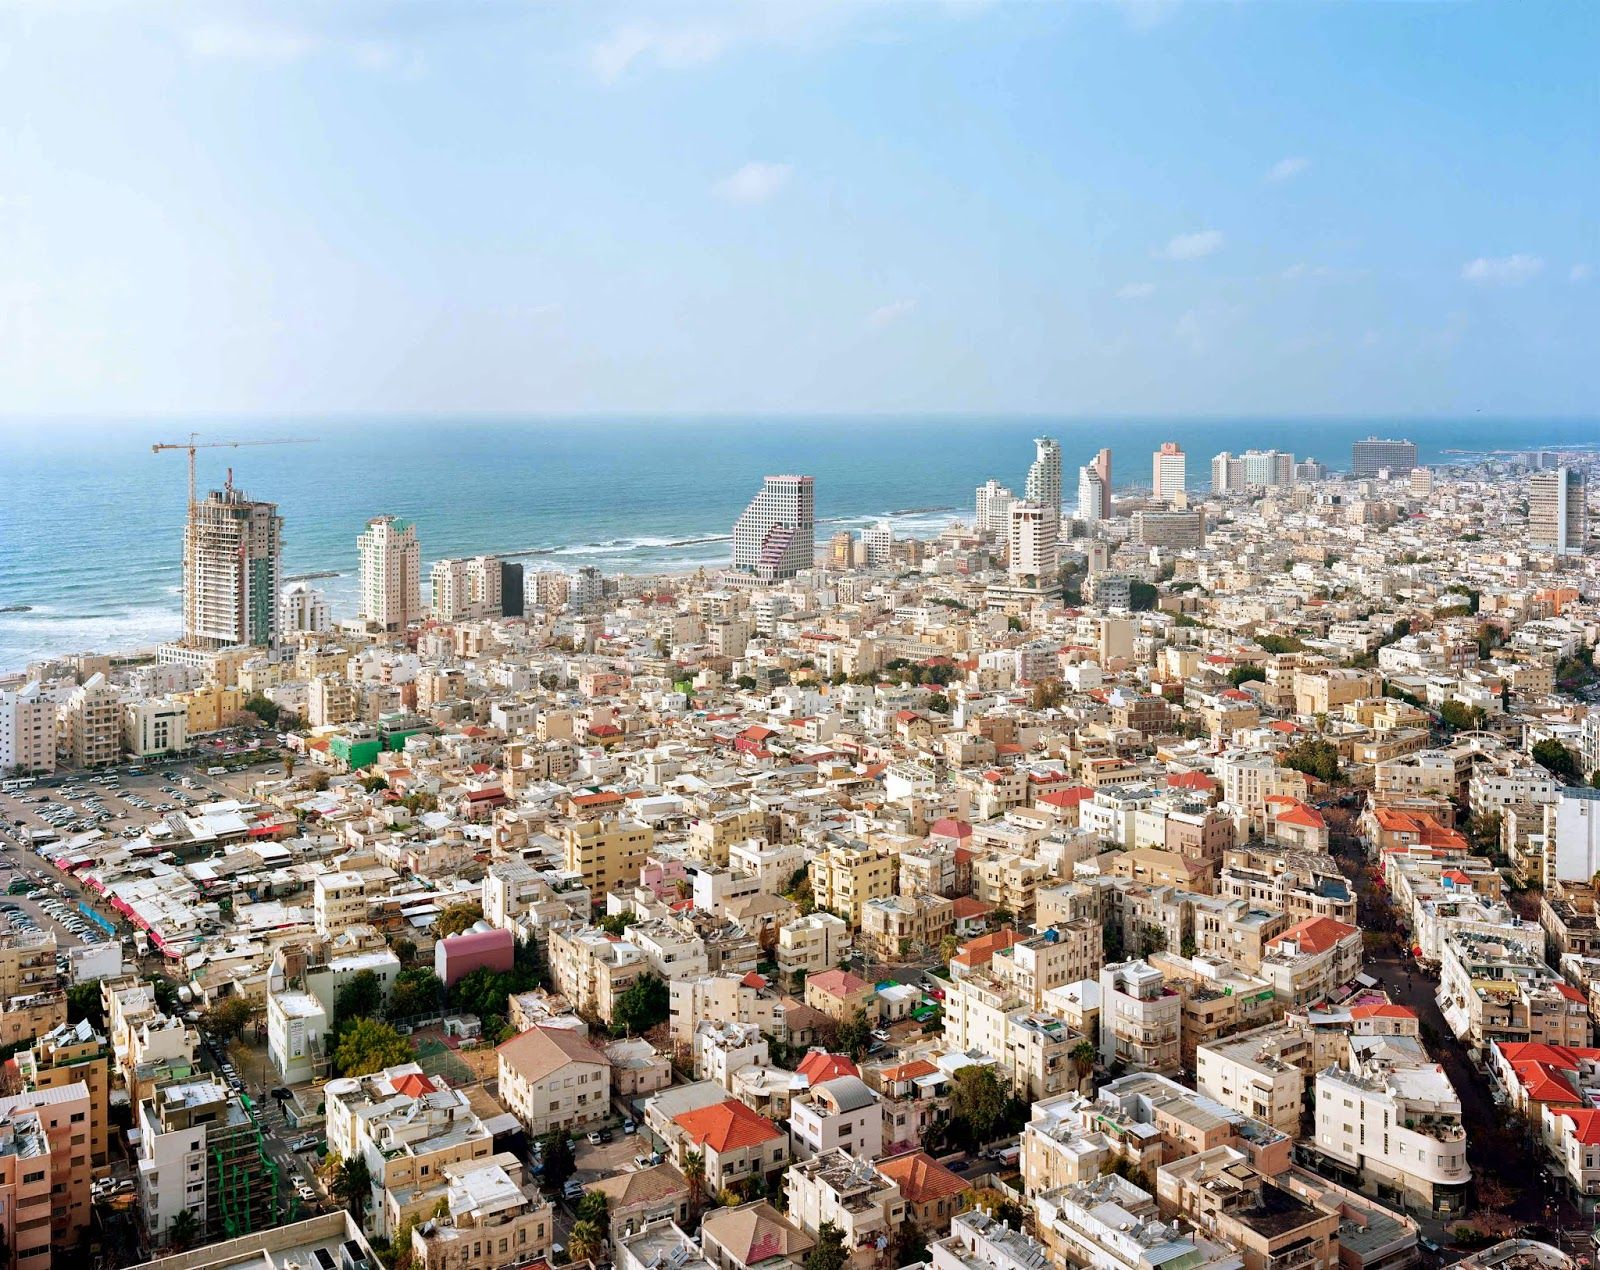 alex google tel aviv. Tel Aviv Skyline - Google Search Alex S